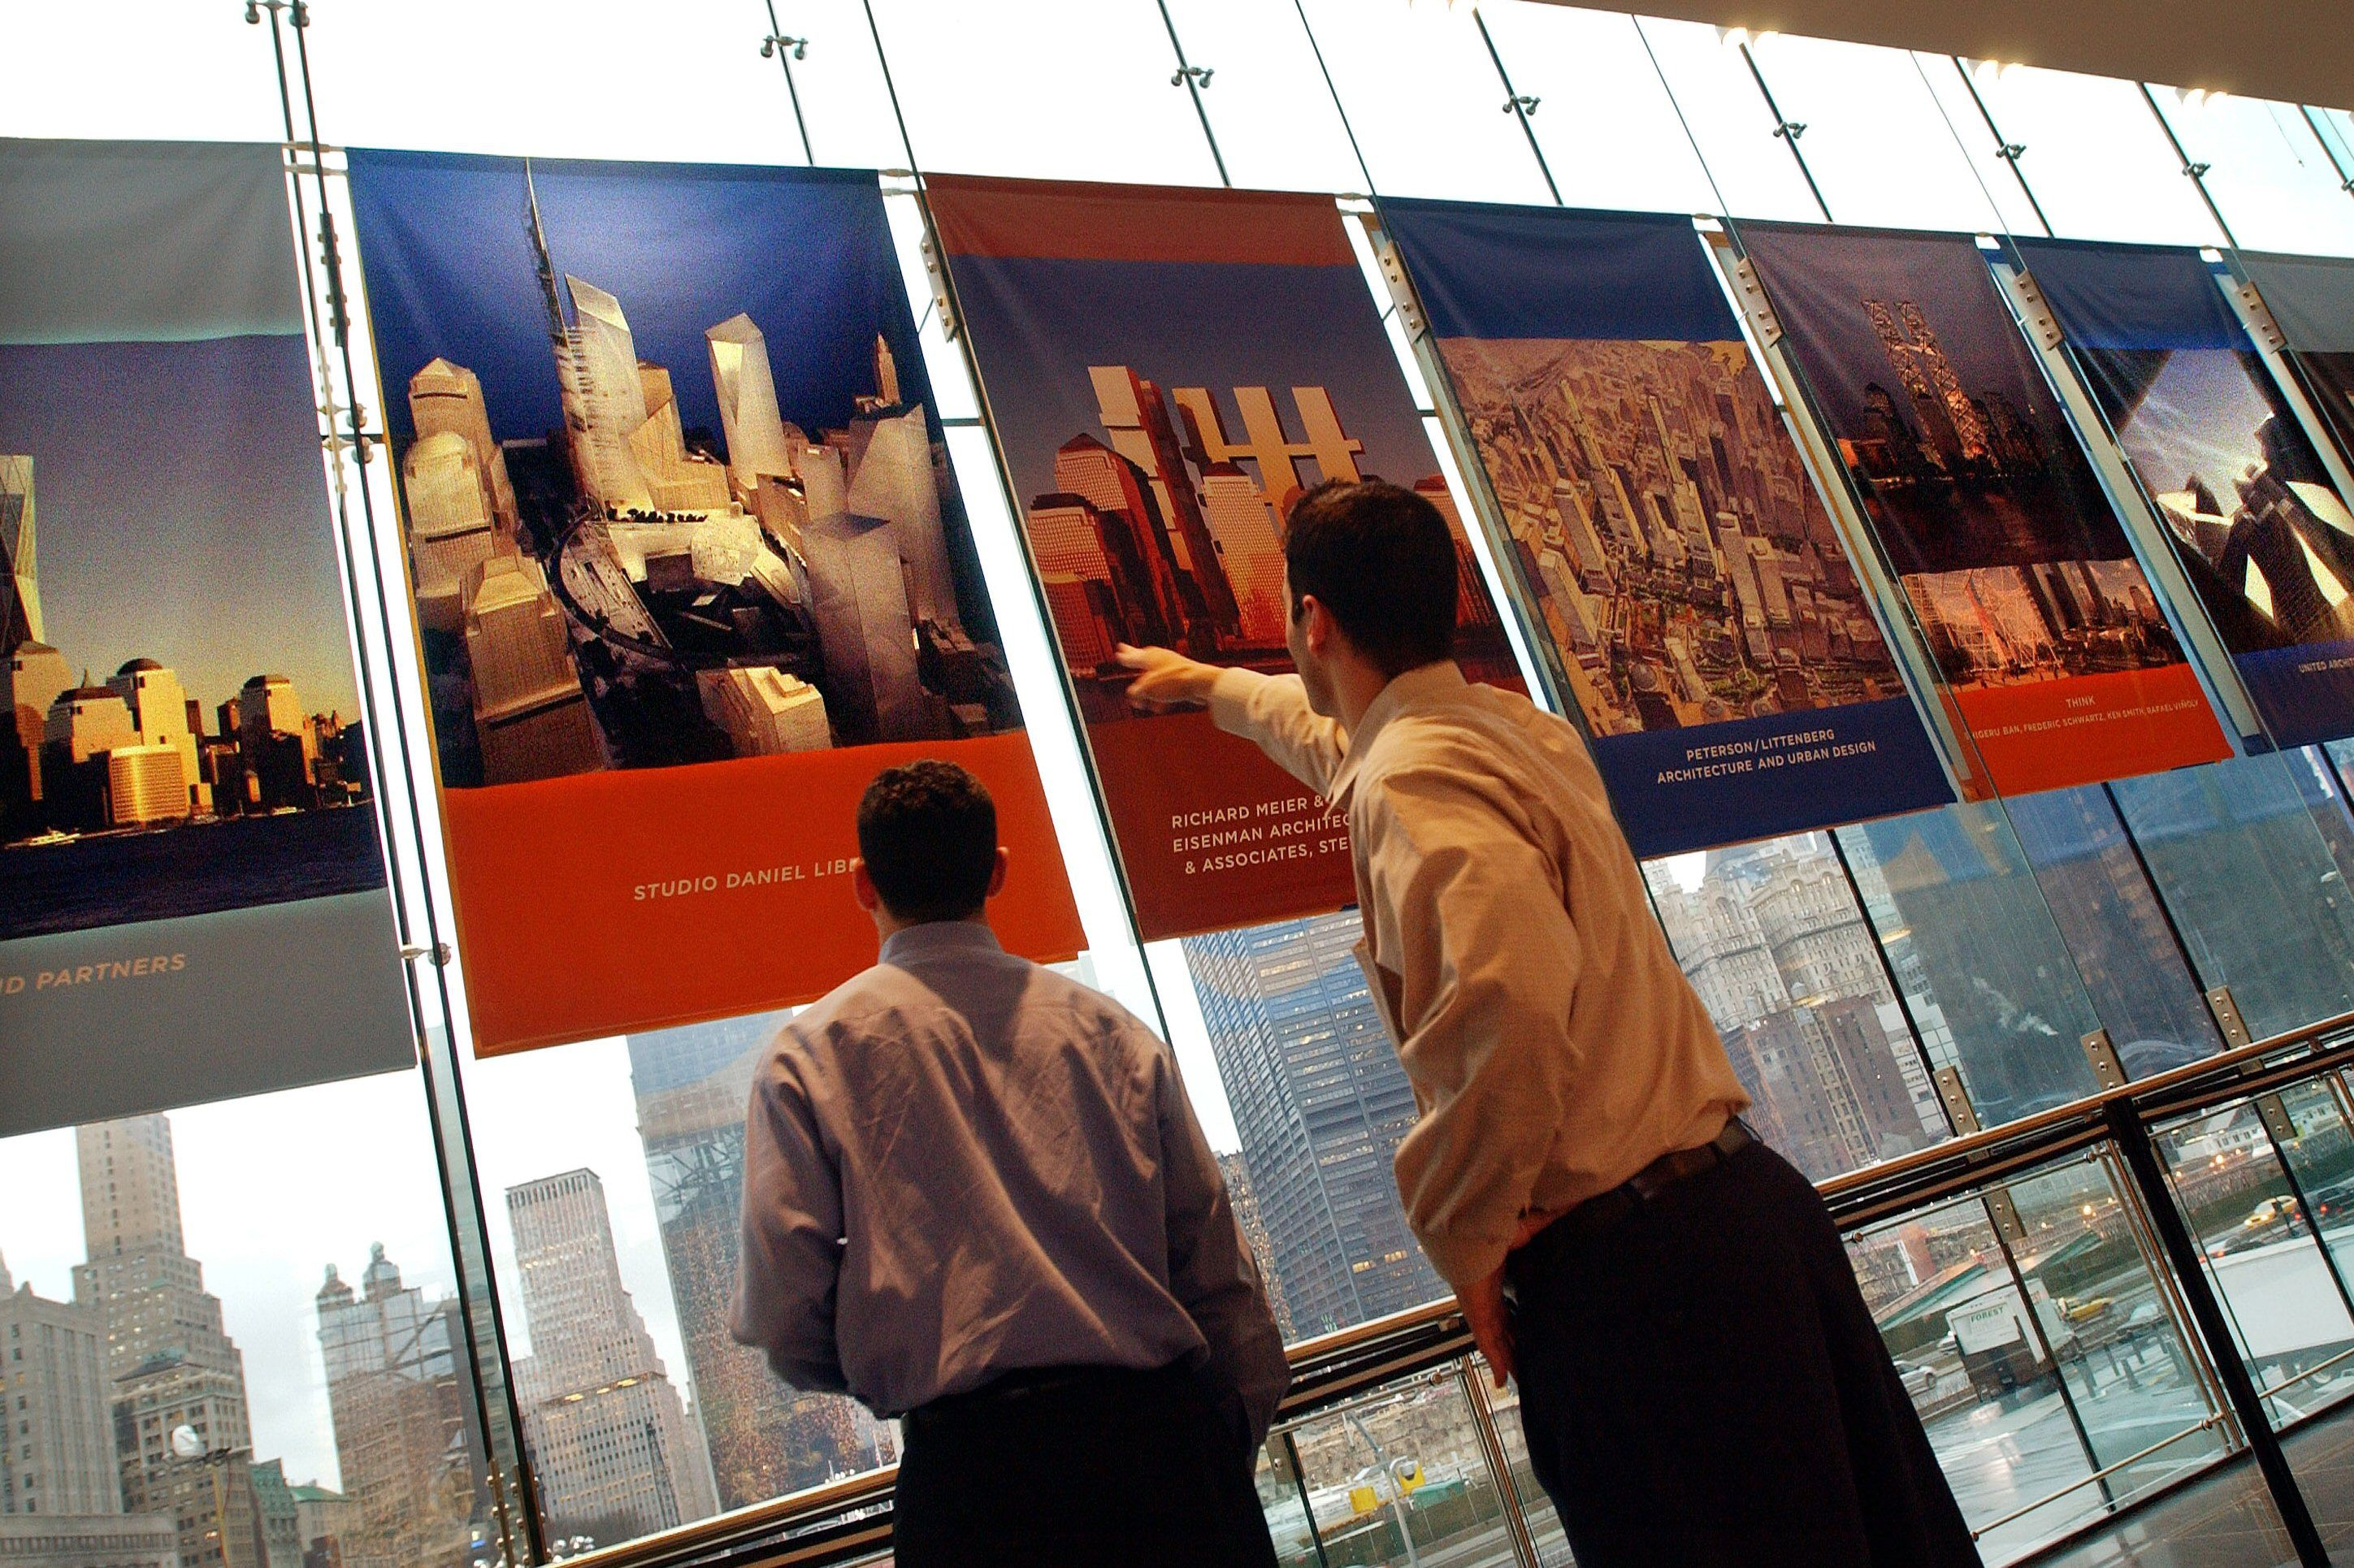 members of the public scrutinize some of new proposed designs for the rebuilding of New York's World Trade Center